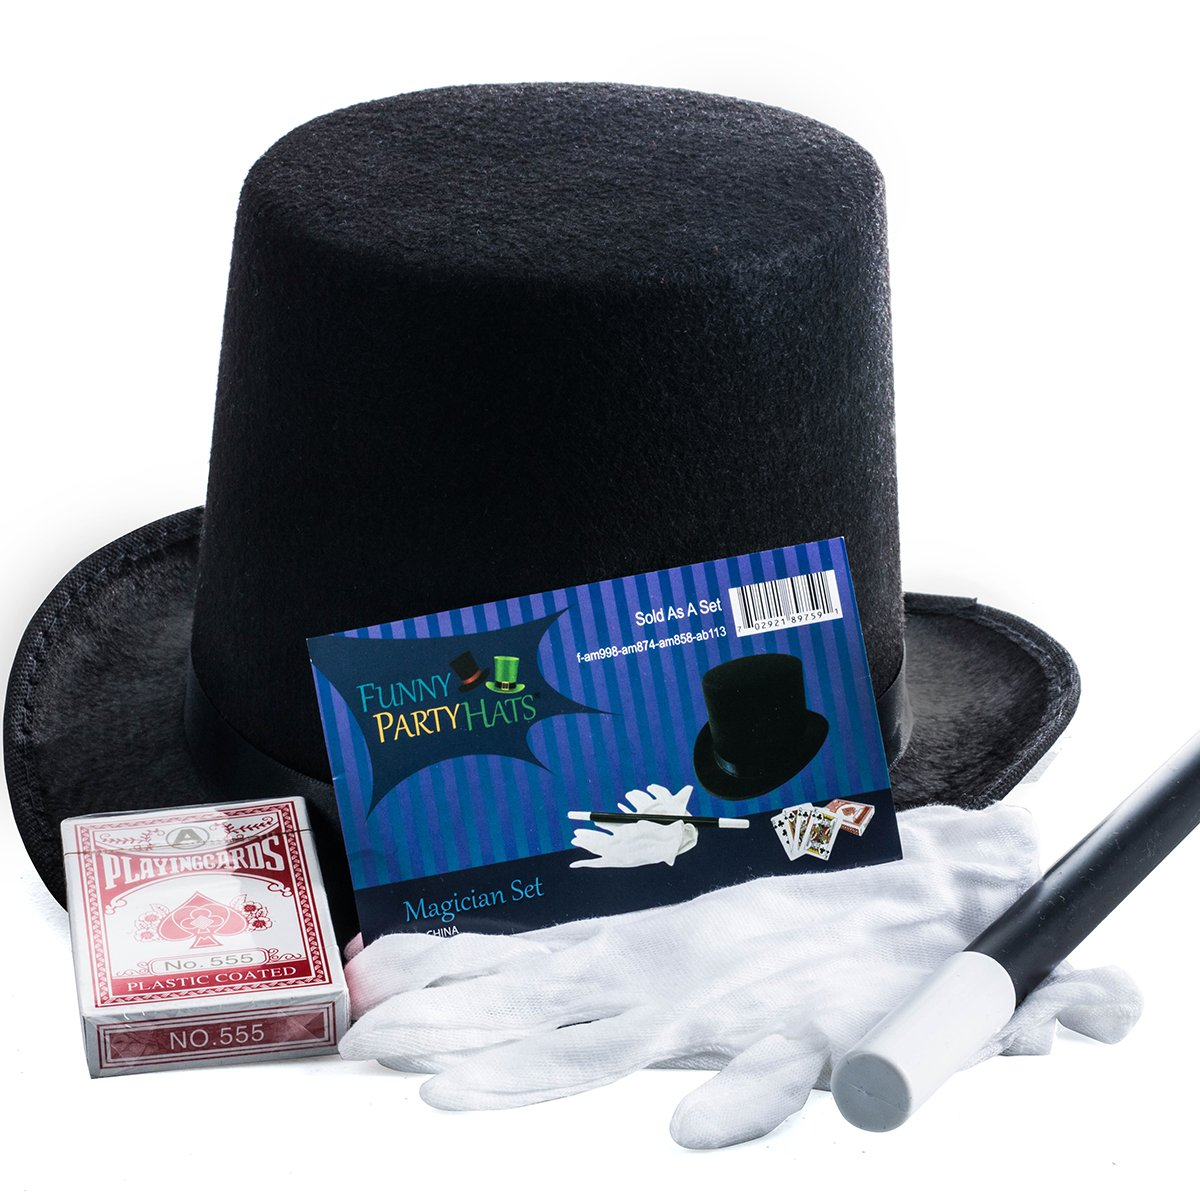 Magician Costume - 4 Pc Set, Magician Hat, Wand , Gloves & Bonus Cards - Magician Kit for Kids Funny Party Hats by Funny Party Hats (Image #7)